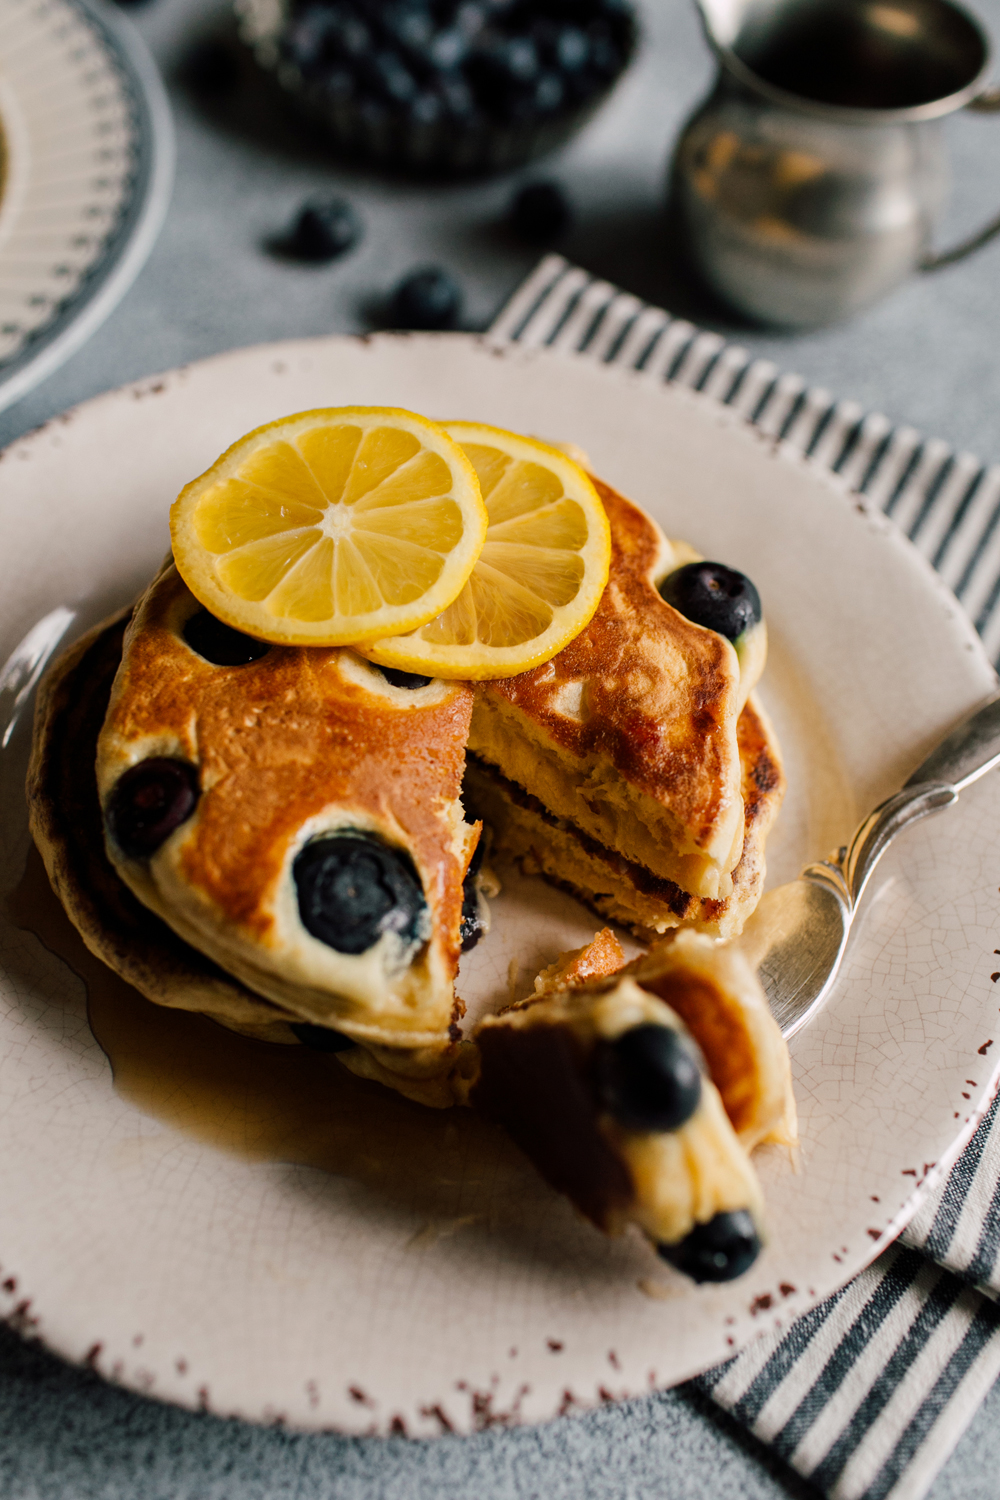 Bellingham Food Stylist and Food Photographer Katheryn Moran Pancakes